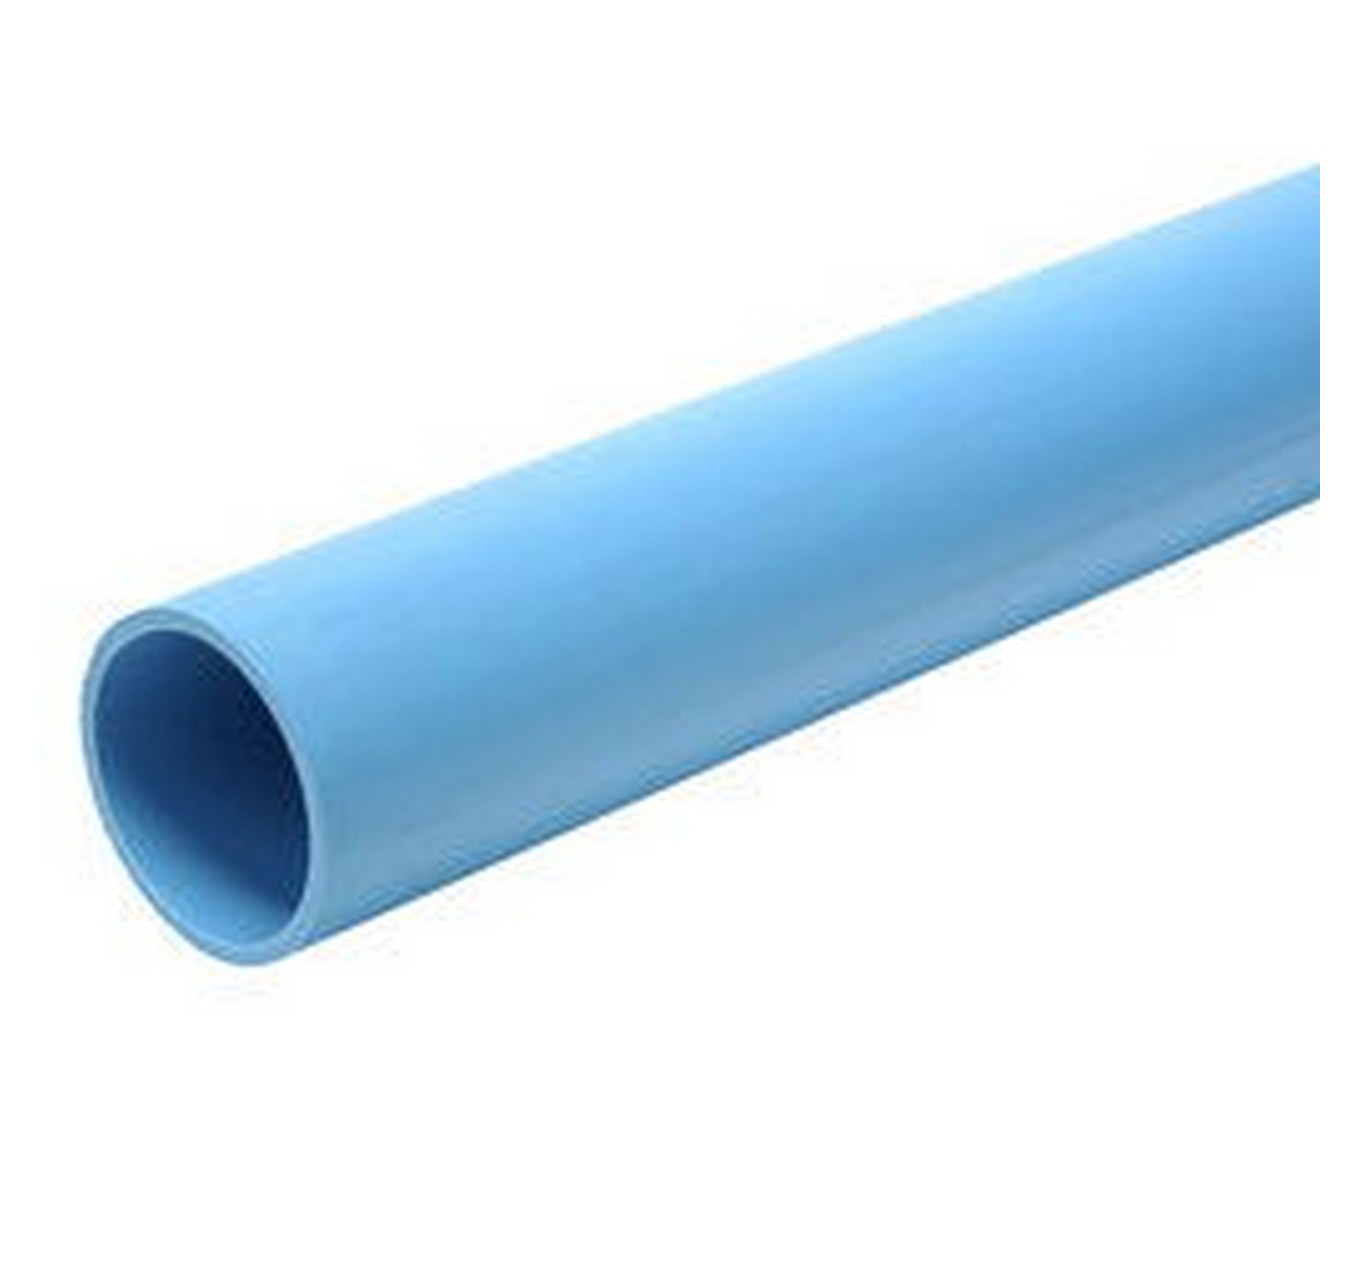 MDPE Blue Poly Pipe 25mmx25m